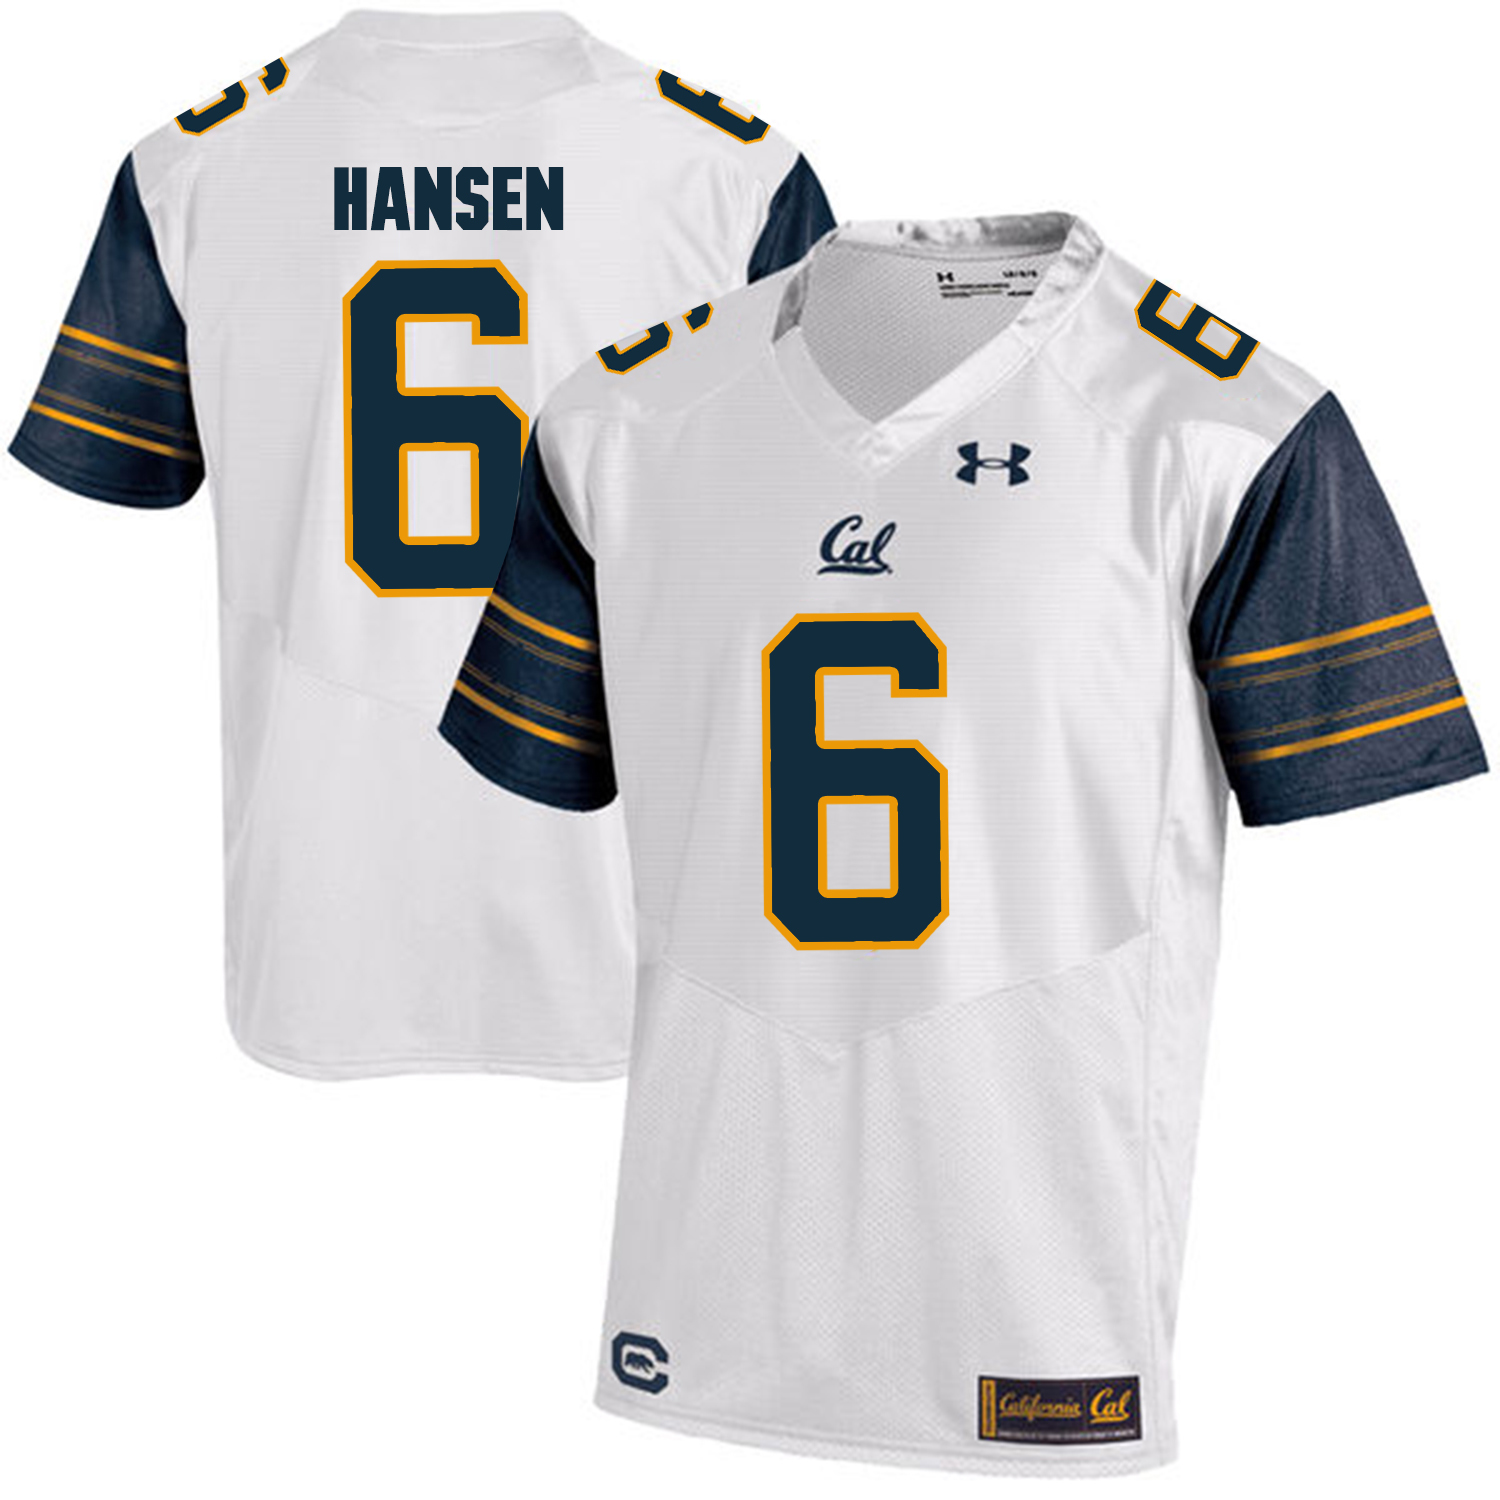 California Golden Bears 6 ChadHansen White College Football Jersey